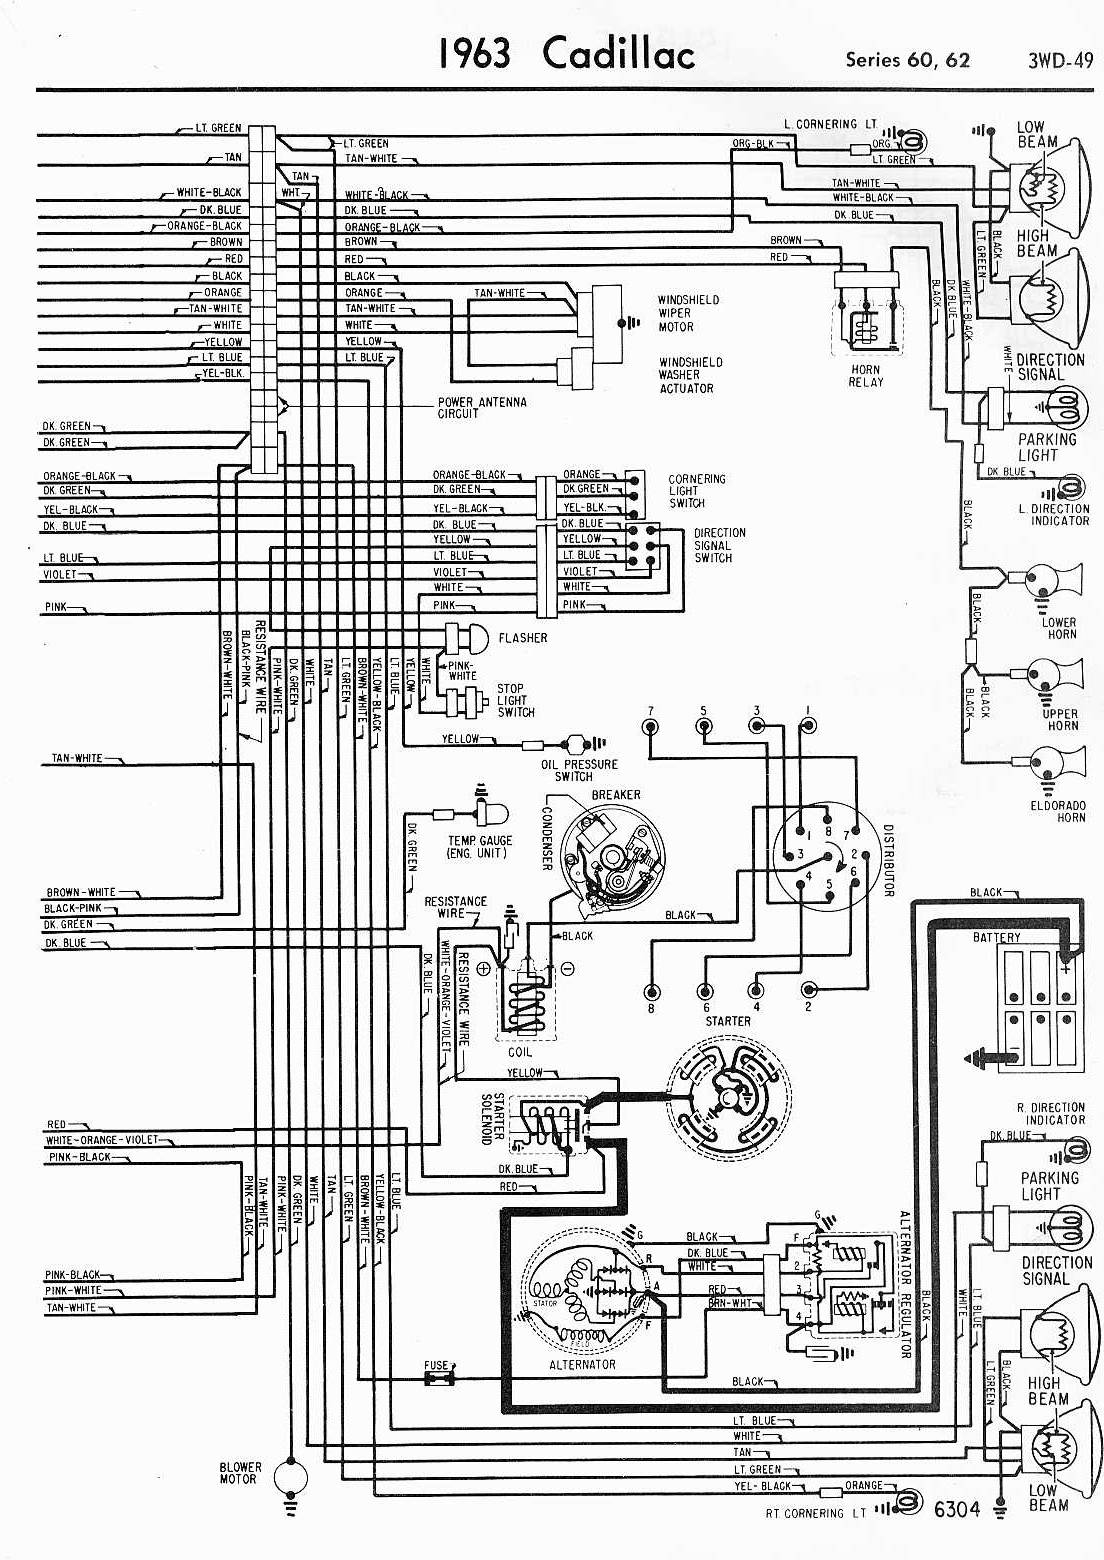 cadillac car manuals wiring diagrams pdf fault codes rh automotive manuals net 1966 cadillac wiring diagram cadillac ats wiring diagram